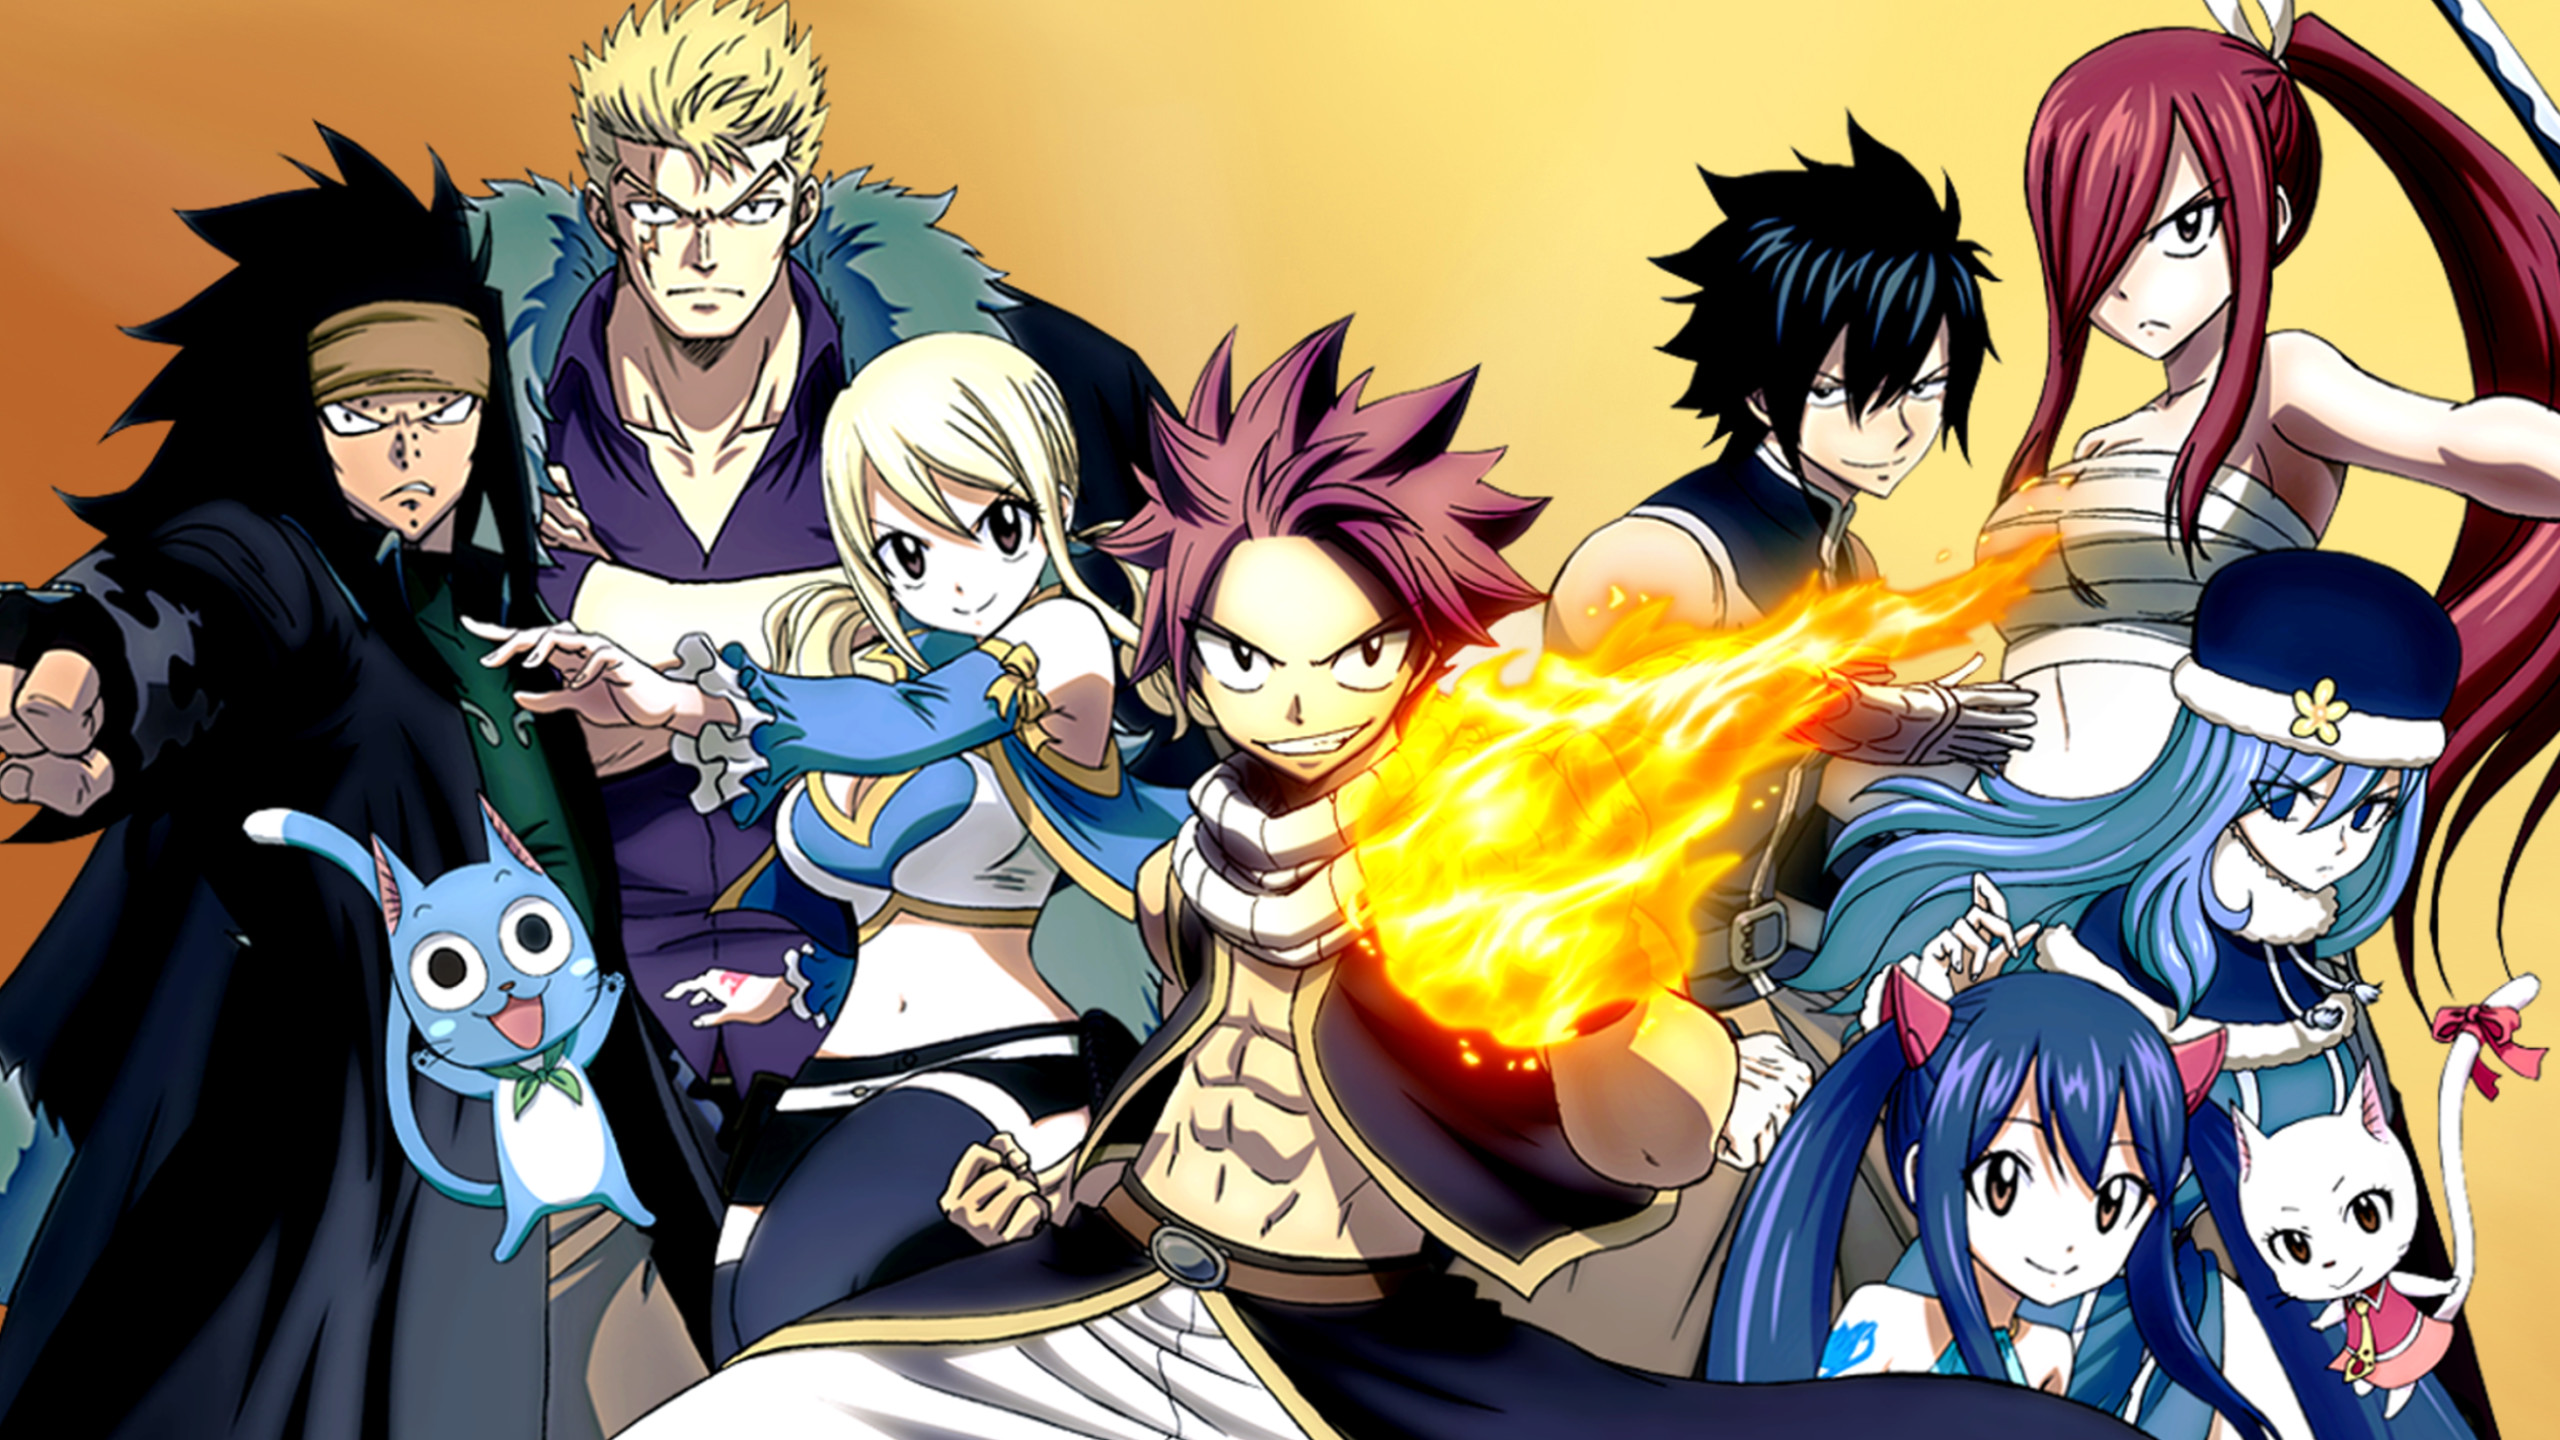 Fairy tail 2018 wallpaper 65 images 2560x1440 299 lucy heartfilia hd wallpapers backgrounds wallpaper abyss page 6 voltagebd Images